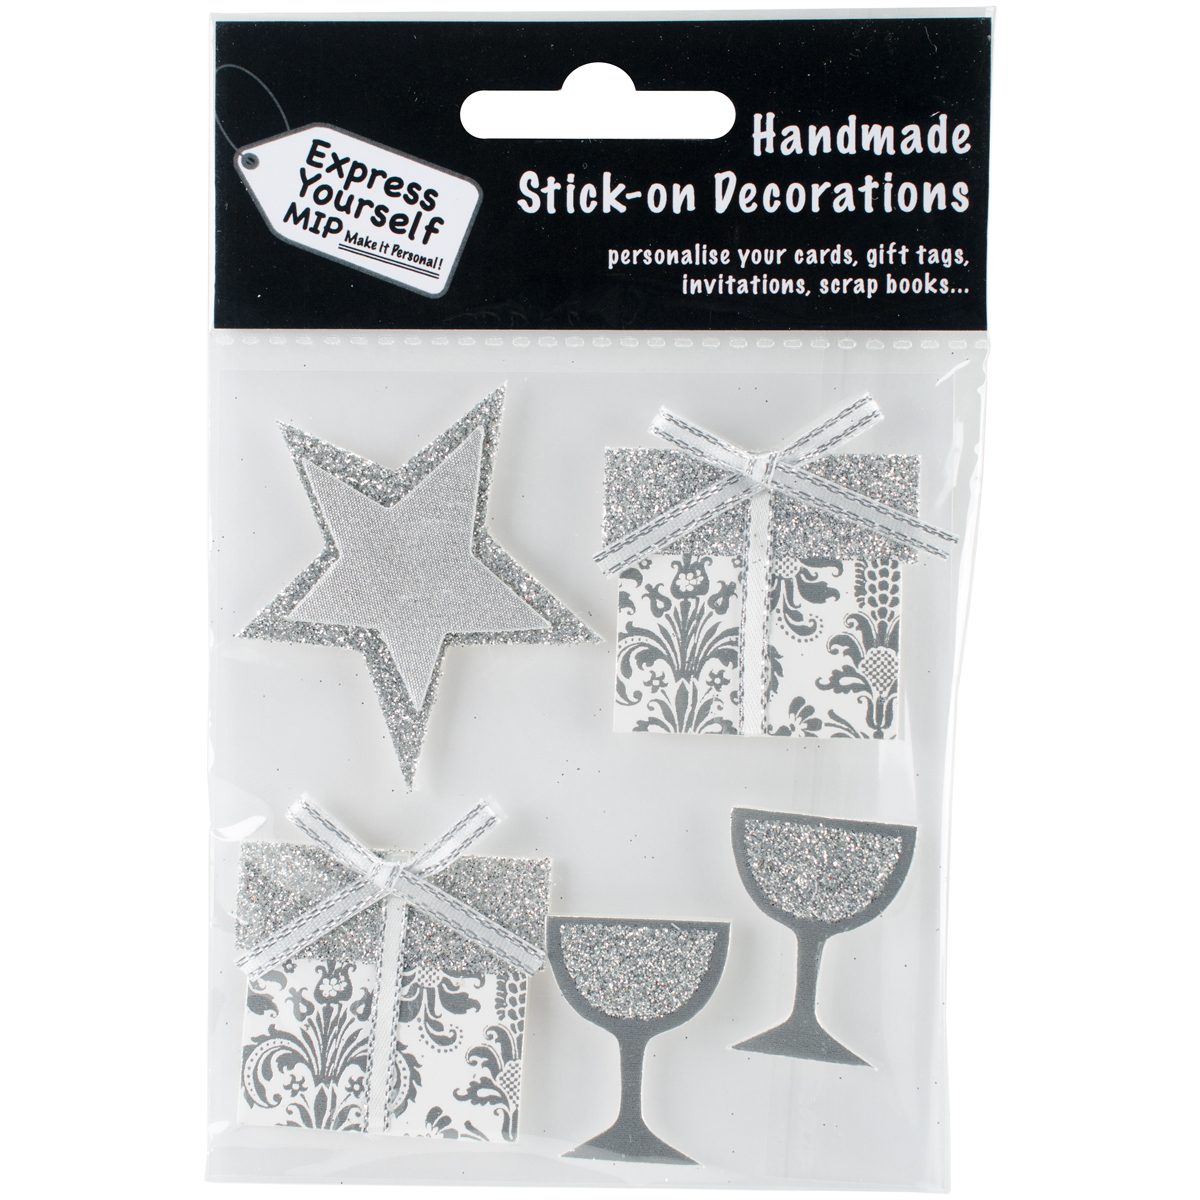 Express Yourself MIP 3D Stickers-Silver Stars, Gifts & Glasses